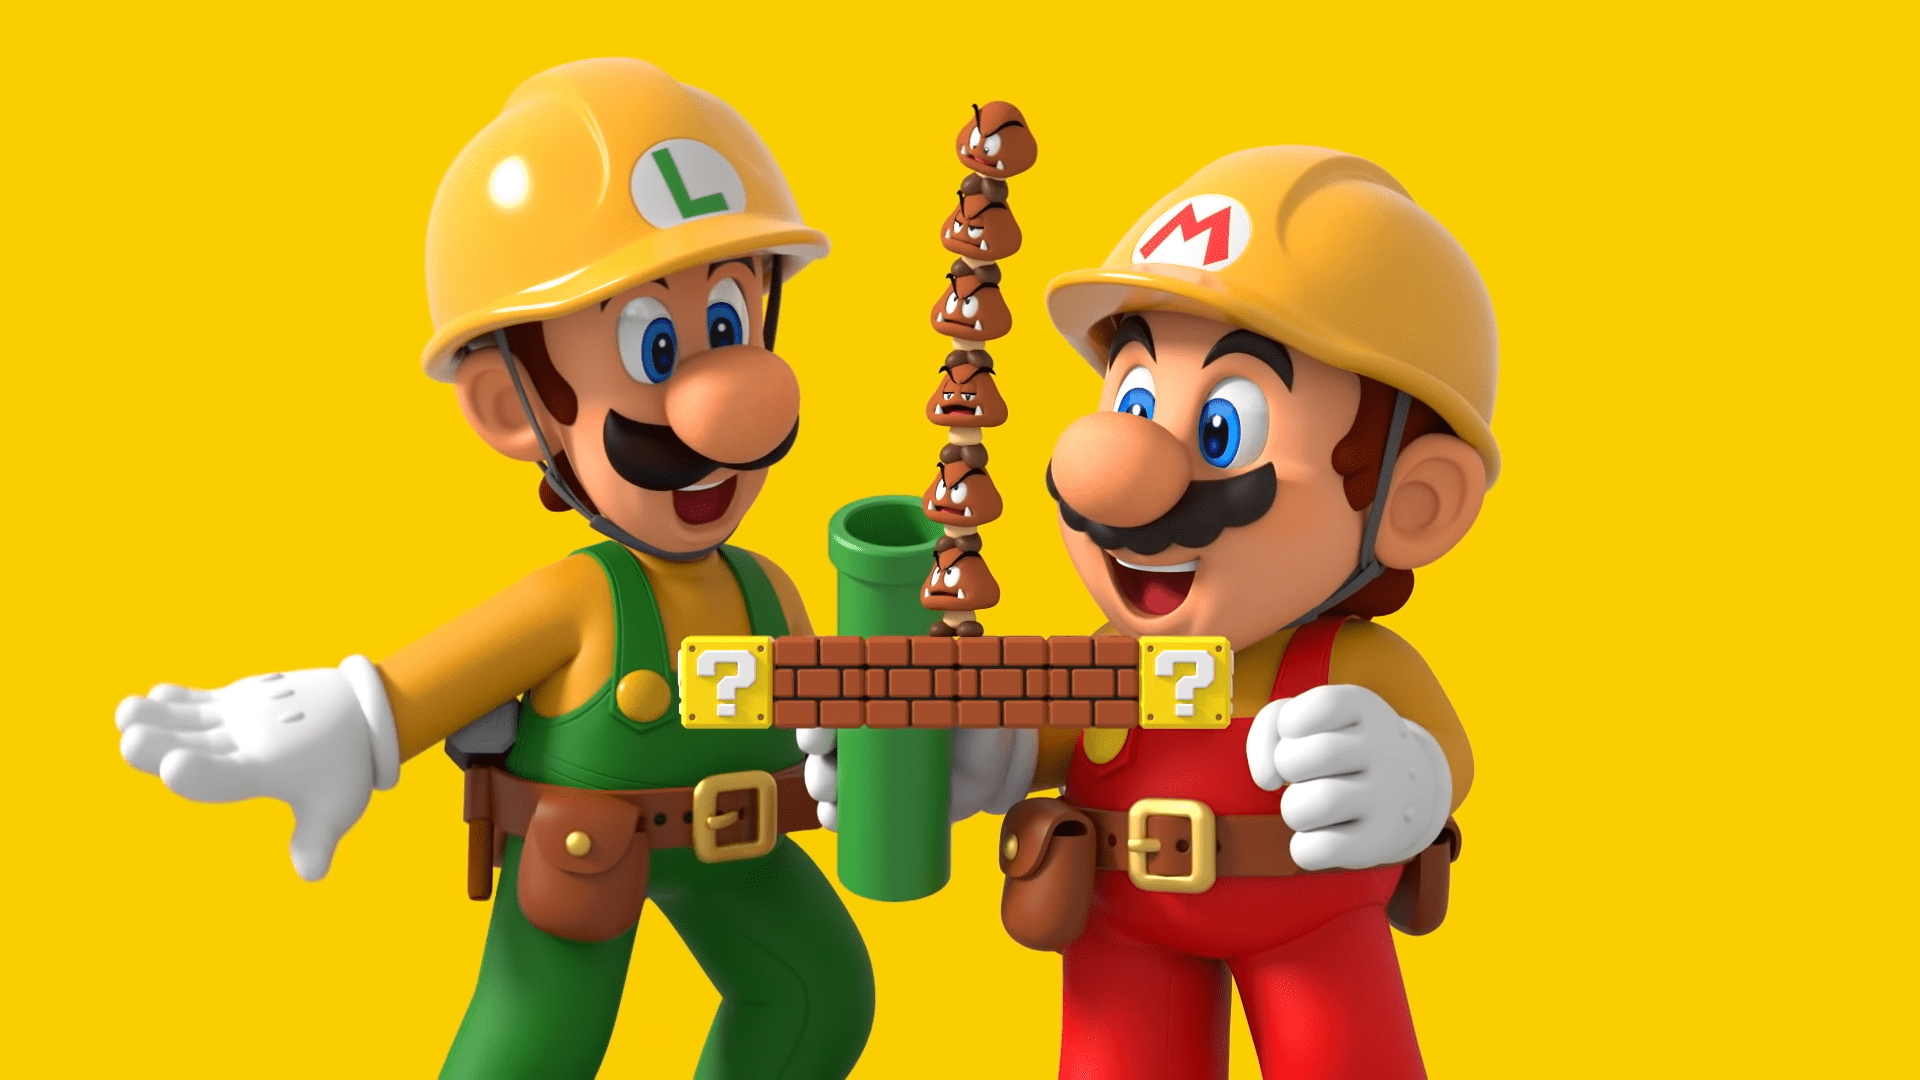 Super Mario Maker 2 Hd Wallpaper 68158 1920x1080px